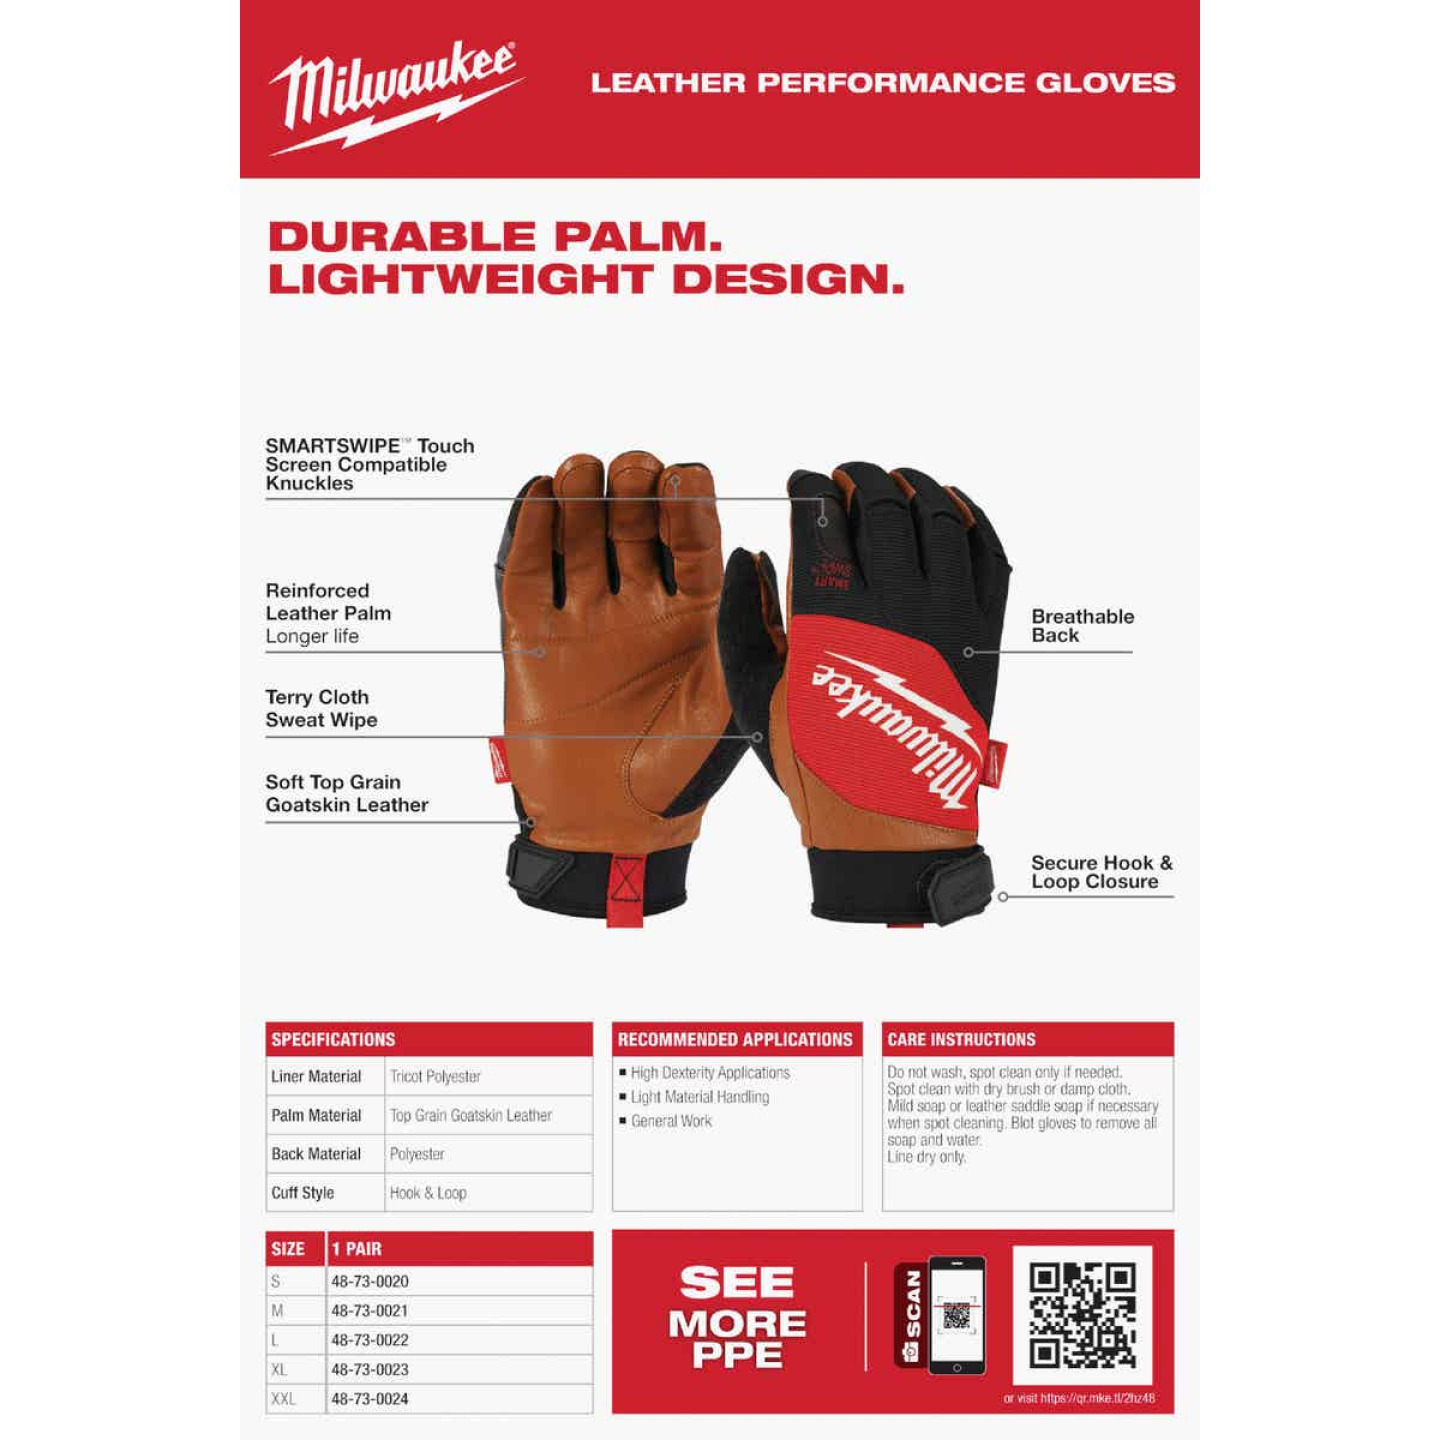 Milwaukee Men's Large Leather Performance Work Glove Image 3